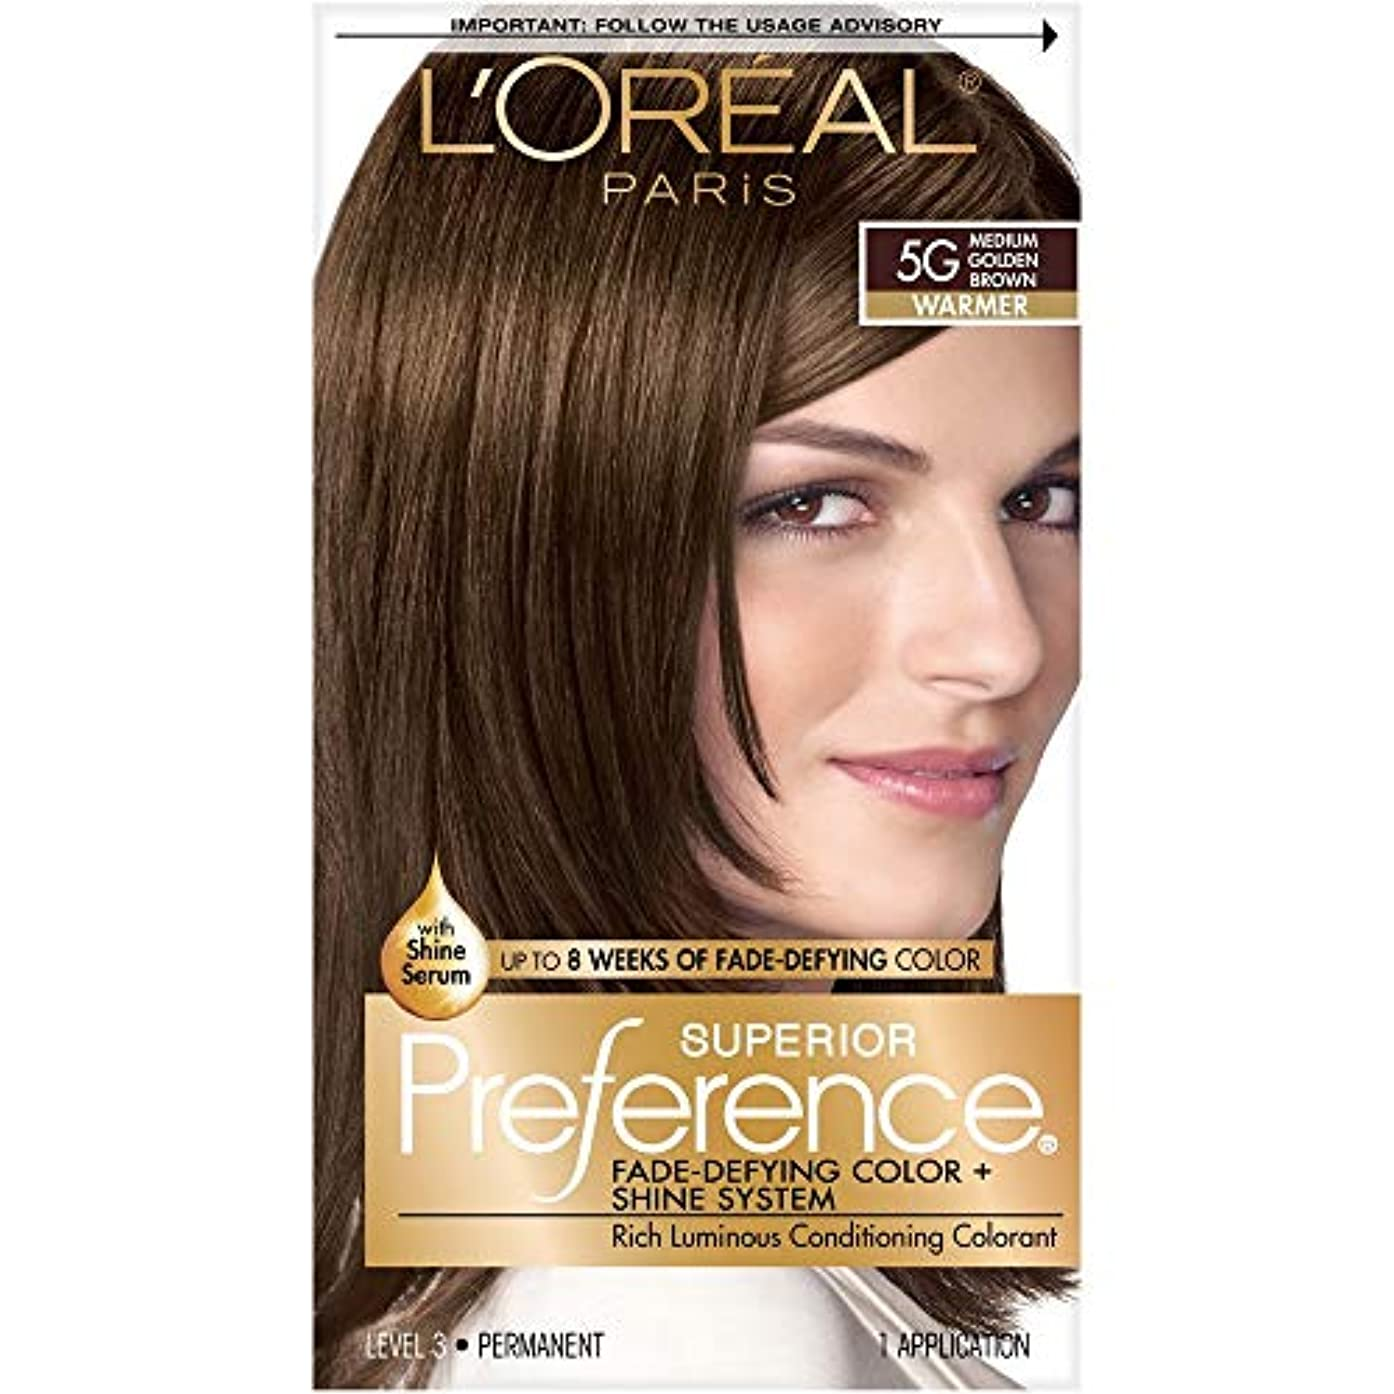 なだめる高齢者クスクス海外直送肘 LOreal Superior Preference Hair Color 5G Medium Golden Brown, Medium Golden Brown 1 each